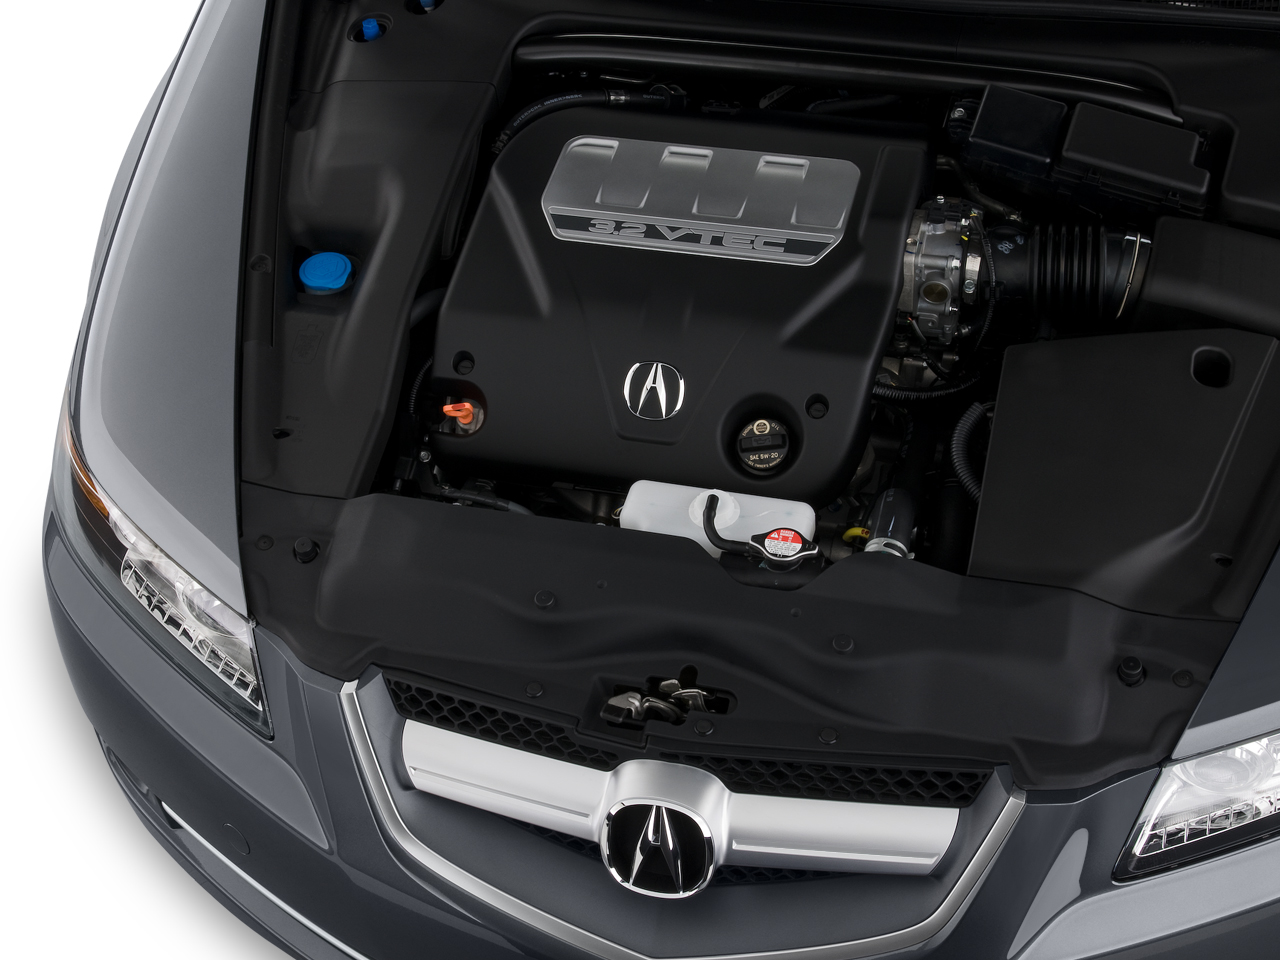 Acura TL Latest News Features And Reviews Automobile Magazine - Acura tl 2018 accessories